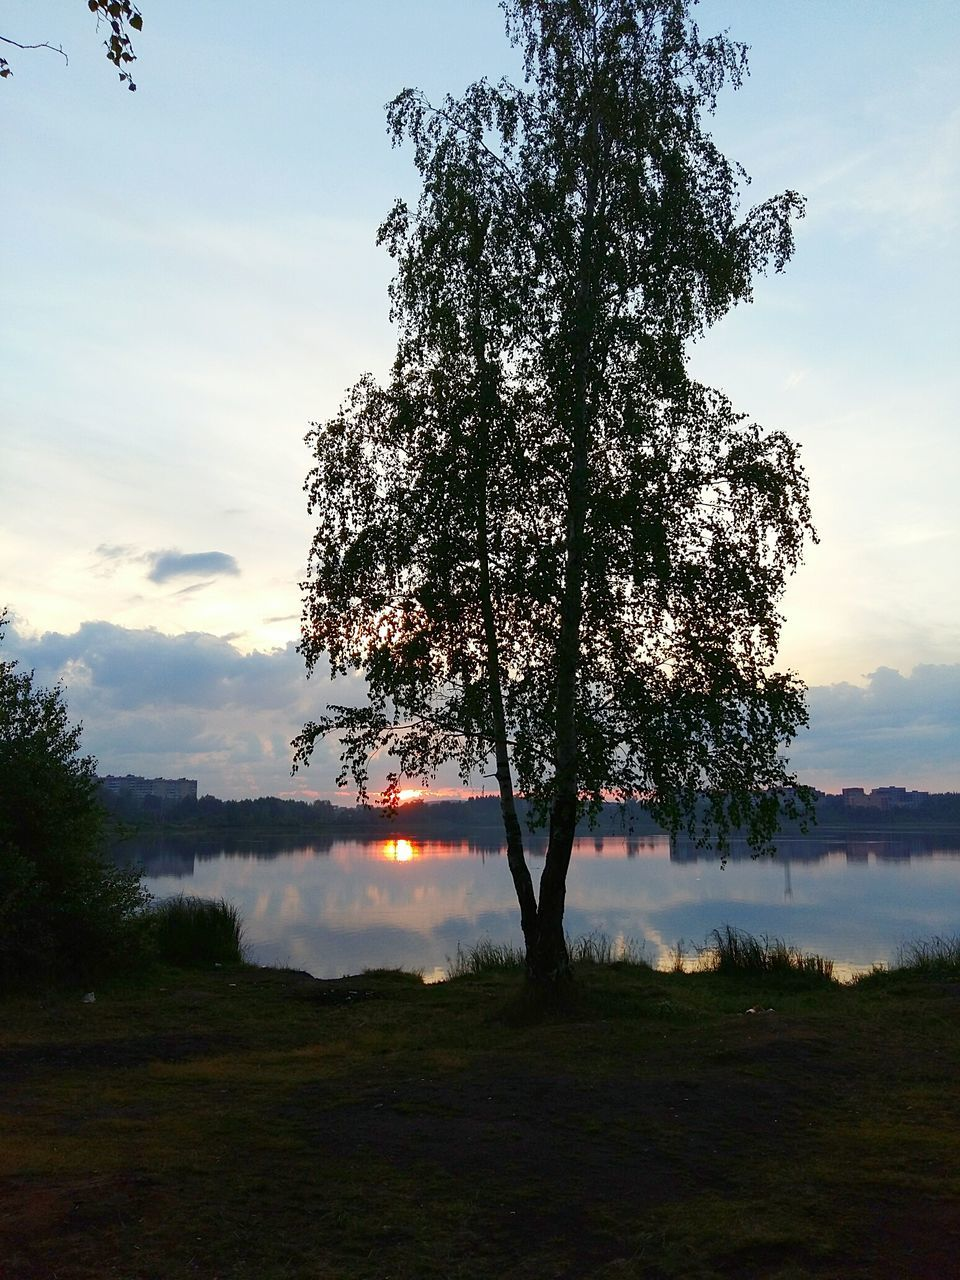 sky, tree, nature, beauty in nature, cloud - sky, tranquility, scenics, outdoors, water, smoke - physical structure, tranquil scene, landscape, no people, lake, sunset, grass, forest fire, day